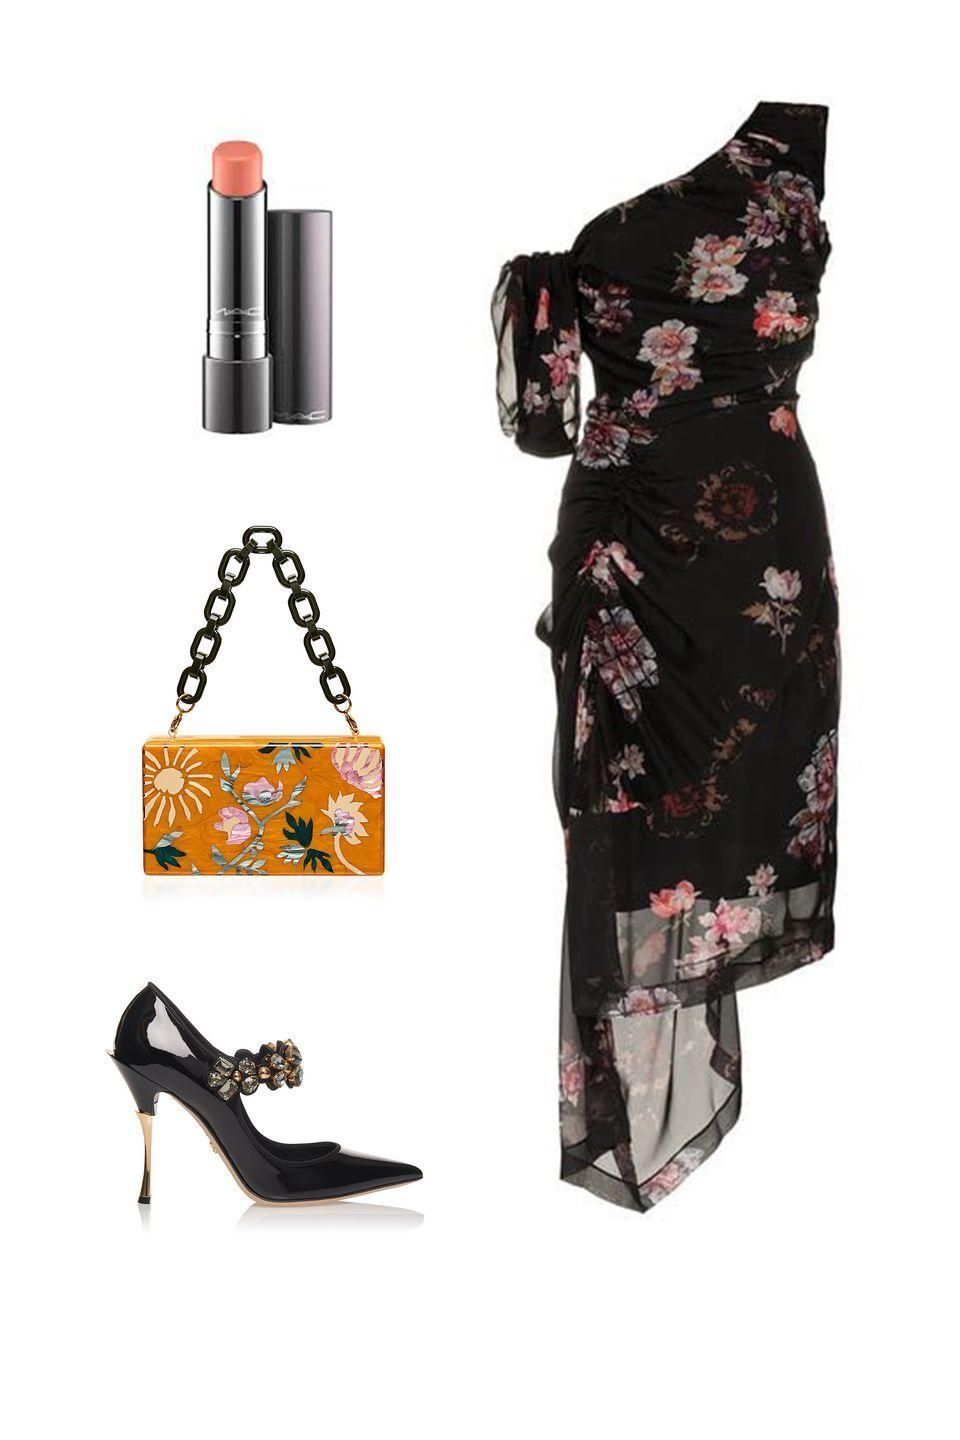 """<p>Ground what were once summer florals with darker, more substantial accessories to make dresses you wore with pop-colors for warm weather weddings appropriate for an autumnal affair. Set an autumnal vibe with a natural, plumping lip color.</p><p><em><strong>Preen by Thorton Bregazzi </strong>dress, $1,059, <a rel=""""nofollow noopener"""" href=""""https://www.farfetch.com/shopping/women/preen-by-thornton-bregazzi-ada-floral-print-one-shoulder-silk-dress-item-13155908.aspx?storeid=9359&from=listing&tglmdl=1"""" target=""""_blank"""" data-ylk=""""slk:farfetch.com"""" class=""""link rapid-noclick-resp"""">farfetch.com</a>; <strong>MAC Cosmetics</strong> """"Kiss and Cuddle"""" lipstick, $21, <a rel=""""nofollow noopener"""" href=""""https://www.maccosmetics.com/product/13854/58805/products/makeup/lips/lipstick/plenty-of-pout-plumping-lipstick#/shade/Kiss_%26_Cuddle"""" target=""""_blank"""" data-ylk=""""slk:maccosmetics.com"""" class=""""link rapid-noclick-resp"""">maccosmetics.com</a>; <strong>Dolce & Gabbana</strong> pumps, $1,195, <a rel=""""nofollow noopener"""" href=""""https://www.modaoperandi.com/dolce-gabbana-pf18/crystal-embellished-patent-leather-pumps"""" target=""""_blank"""" data-ylk=""""slk:modaoperandi.com"""" class=""""link rapid-noclick-resp"""">modaoperandi.com</a>.</em></p>"""